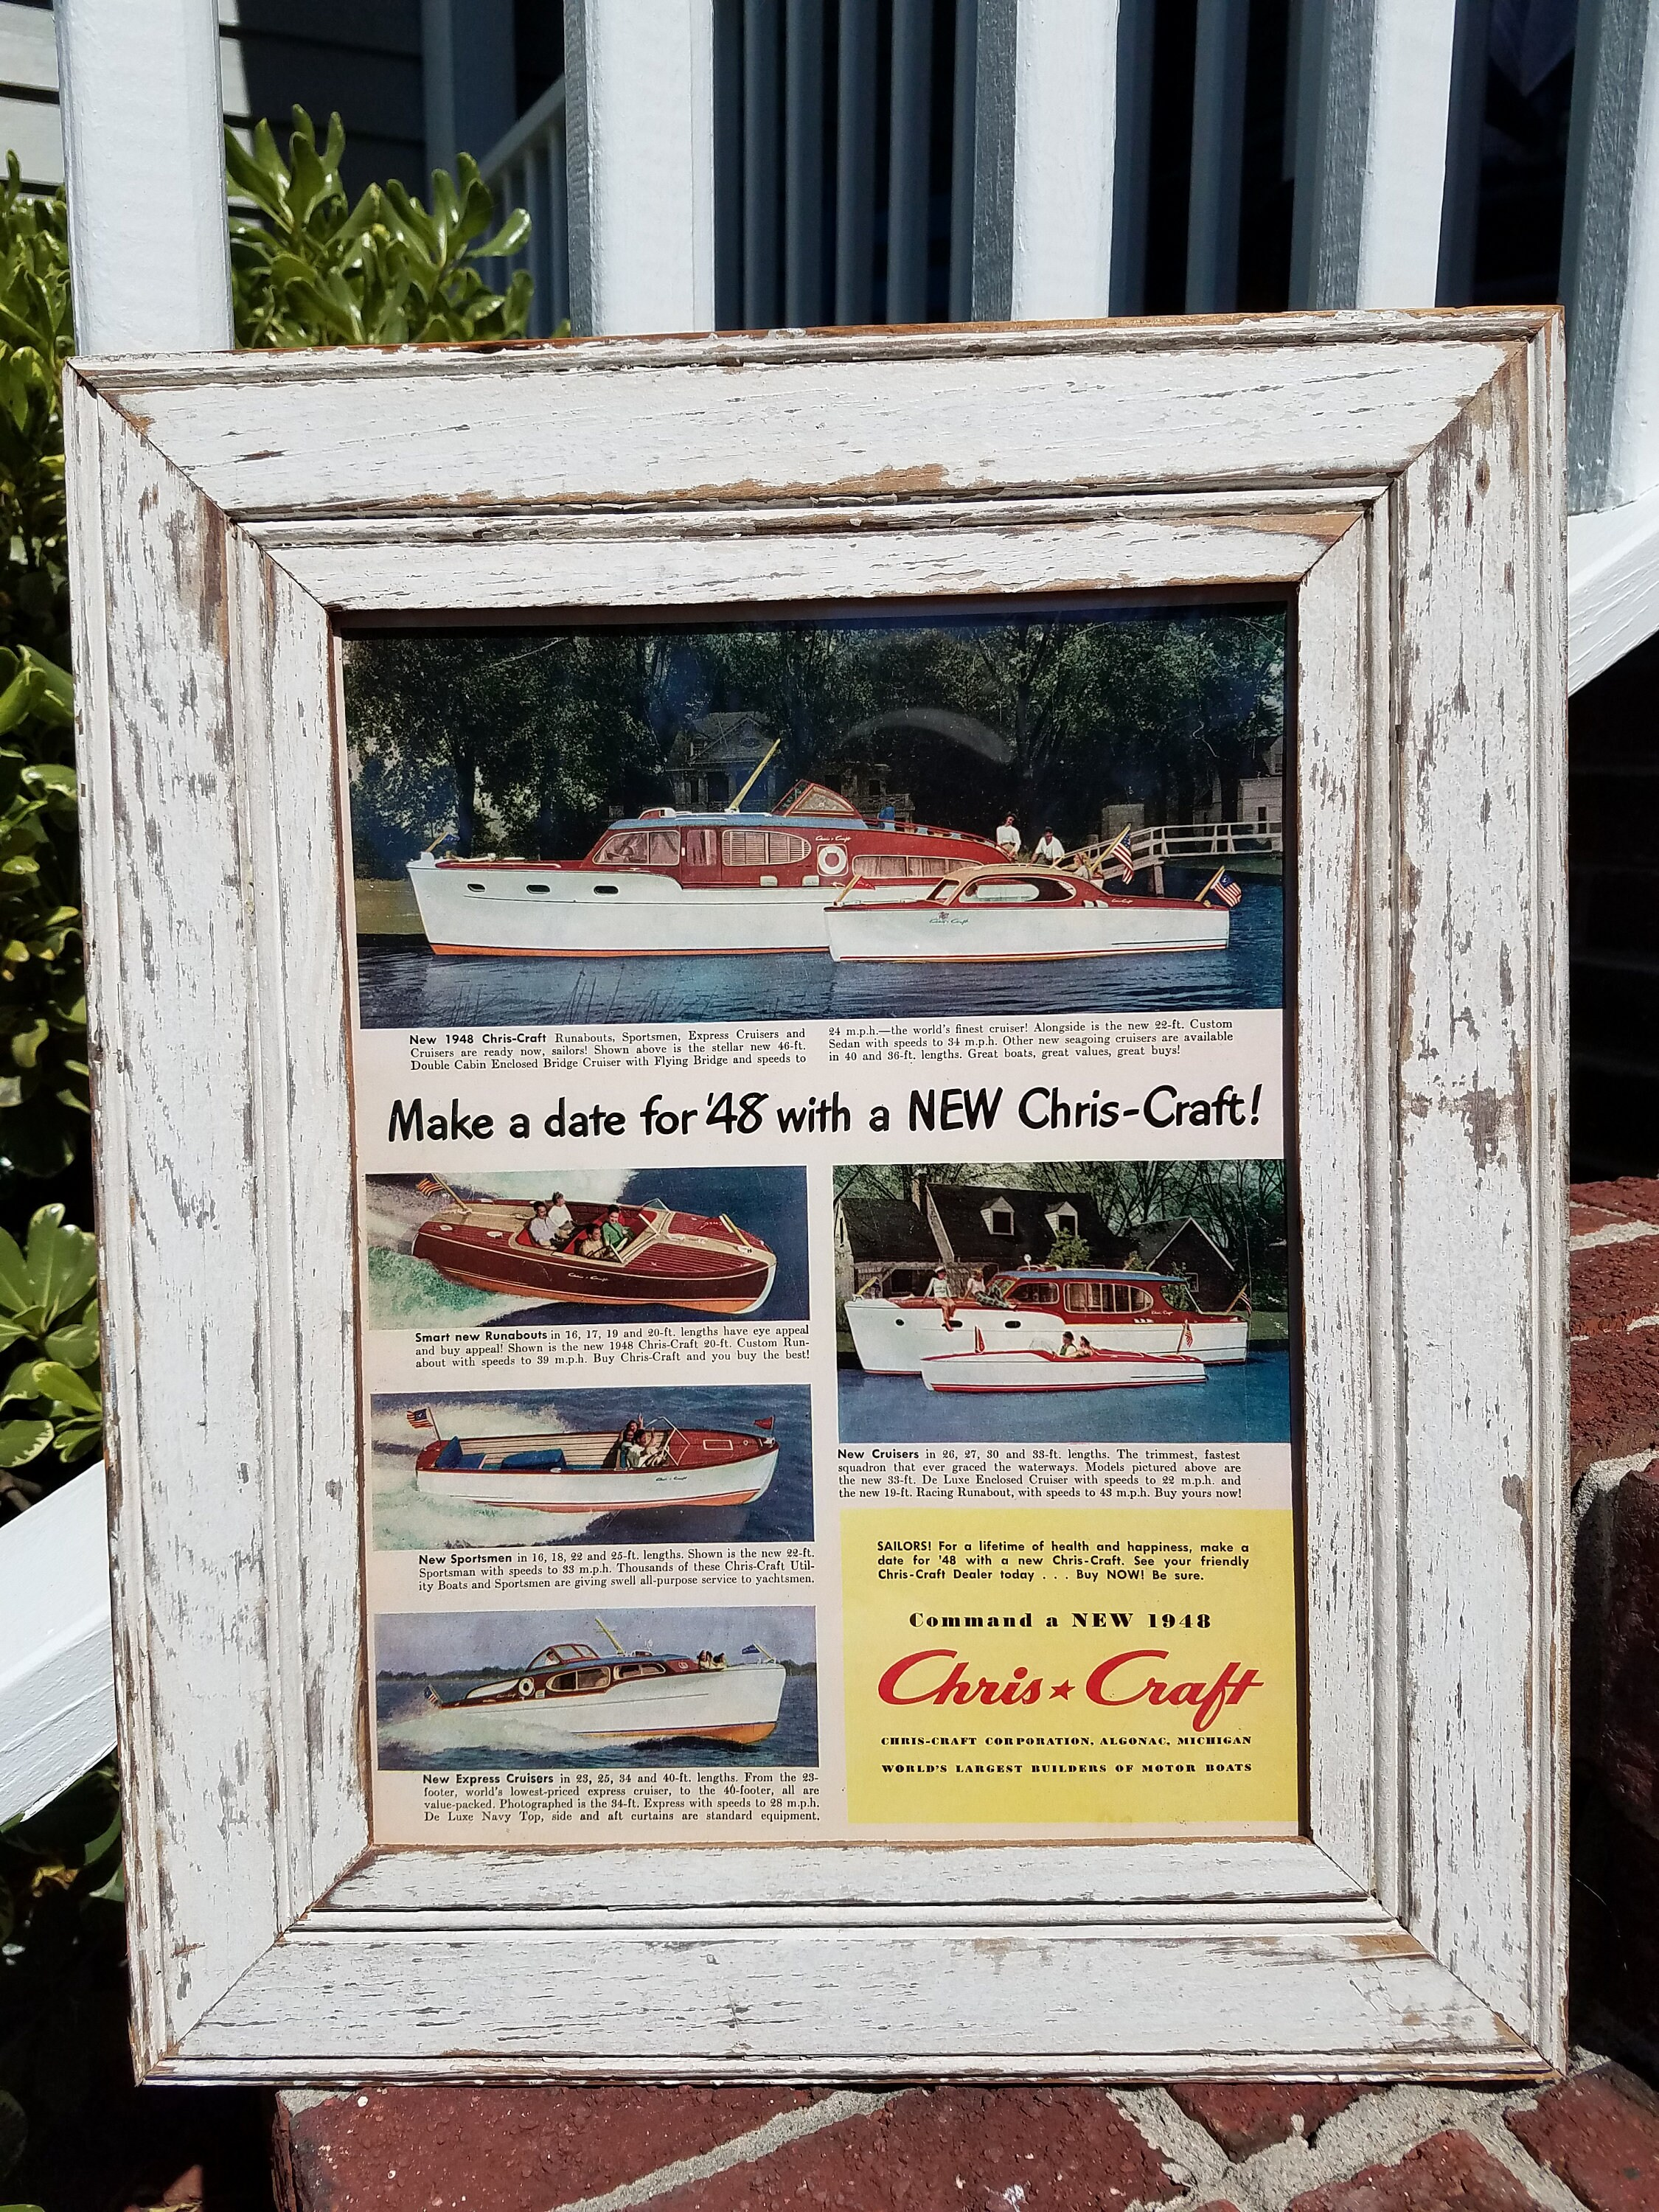 1948 CHRIS CRAFT boat ad copy in salvaged wood picture frame